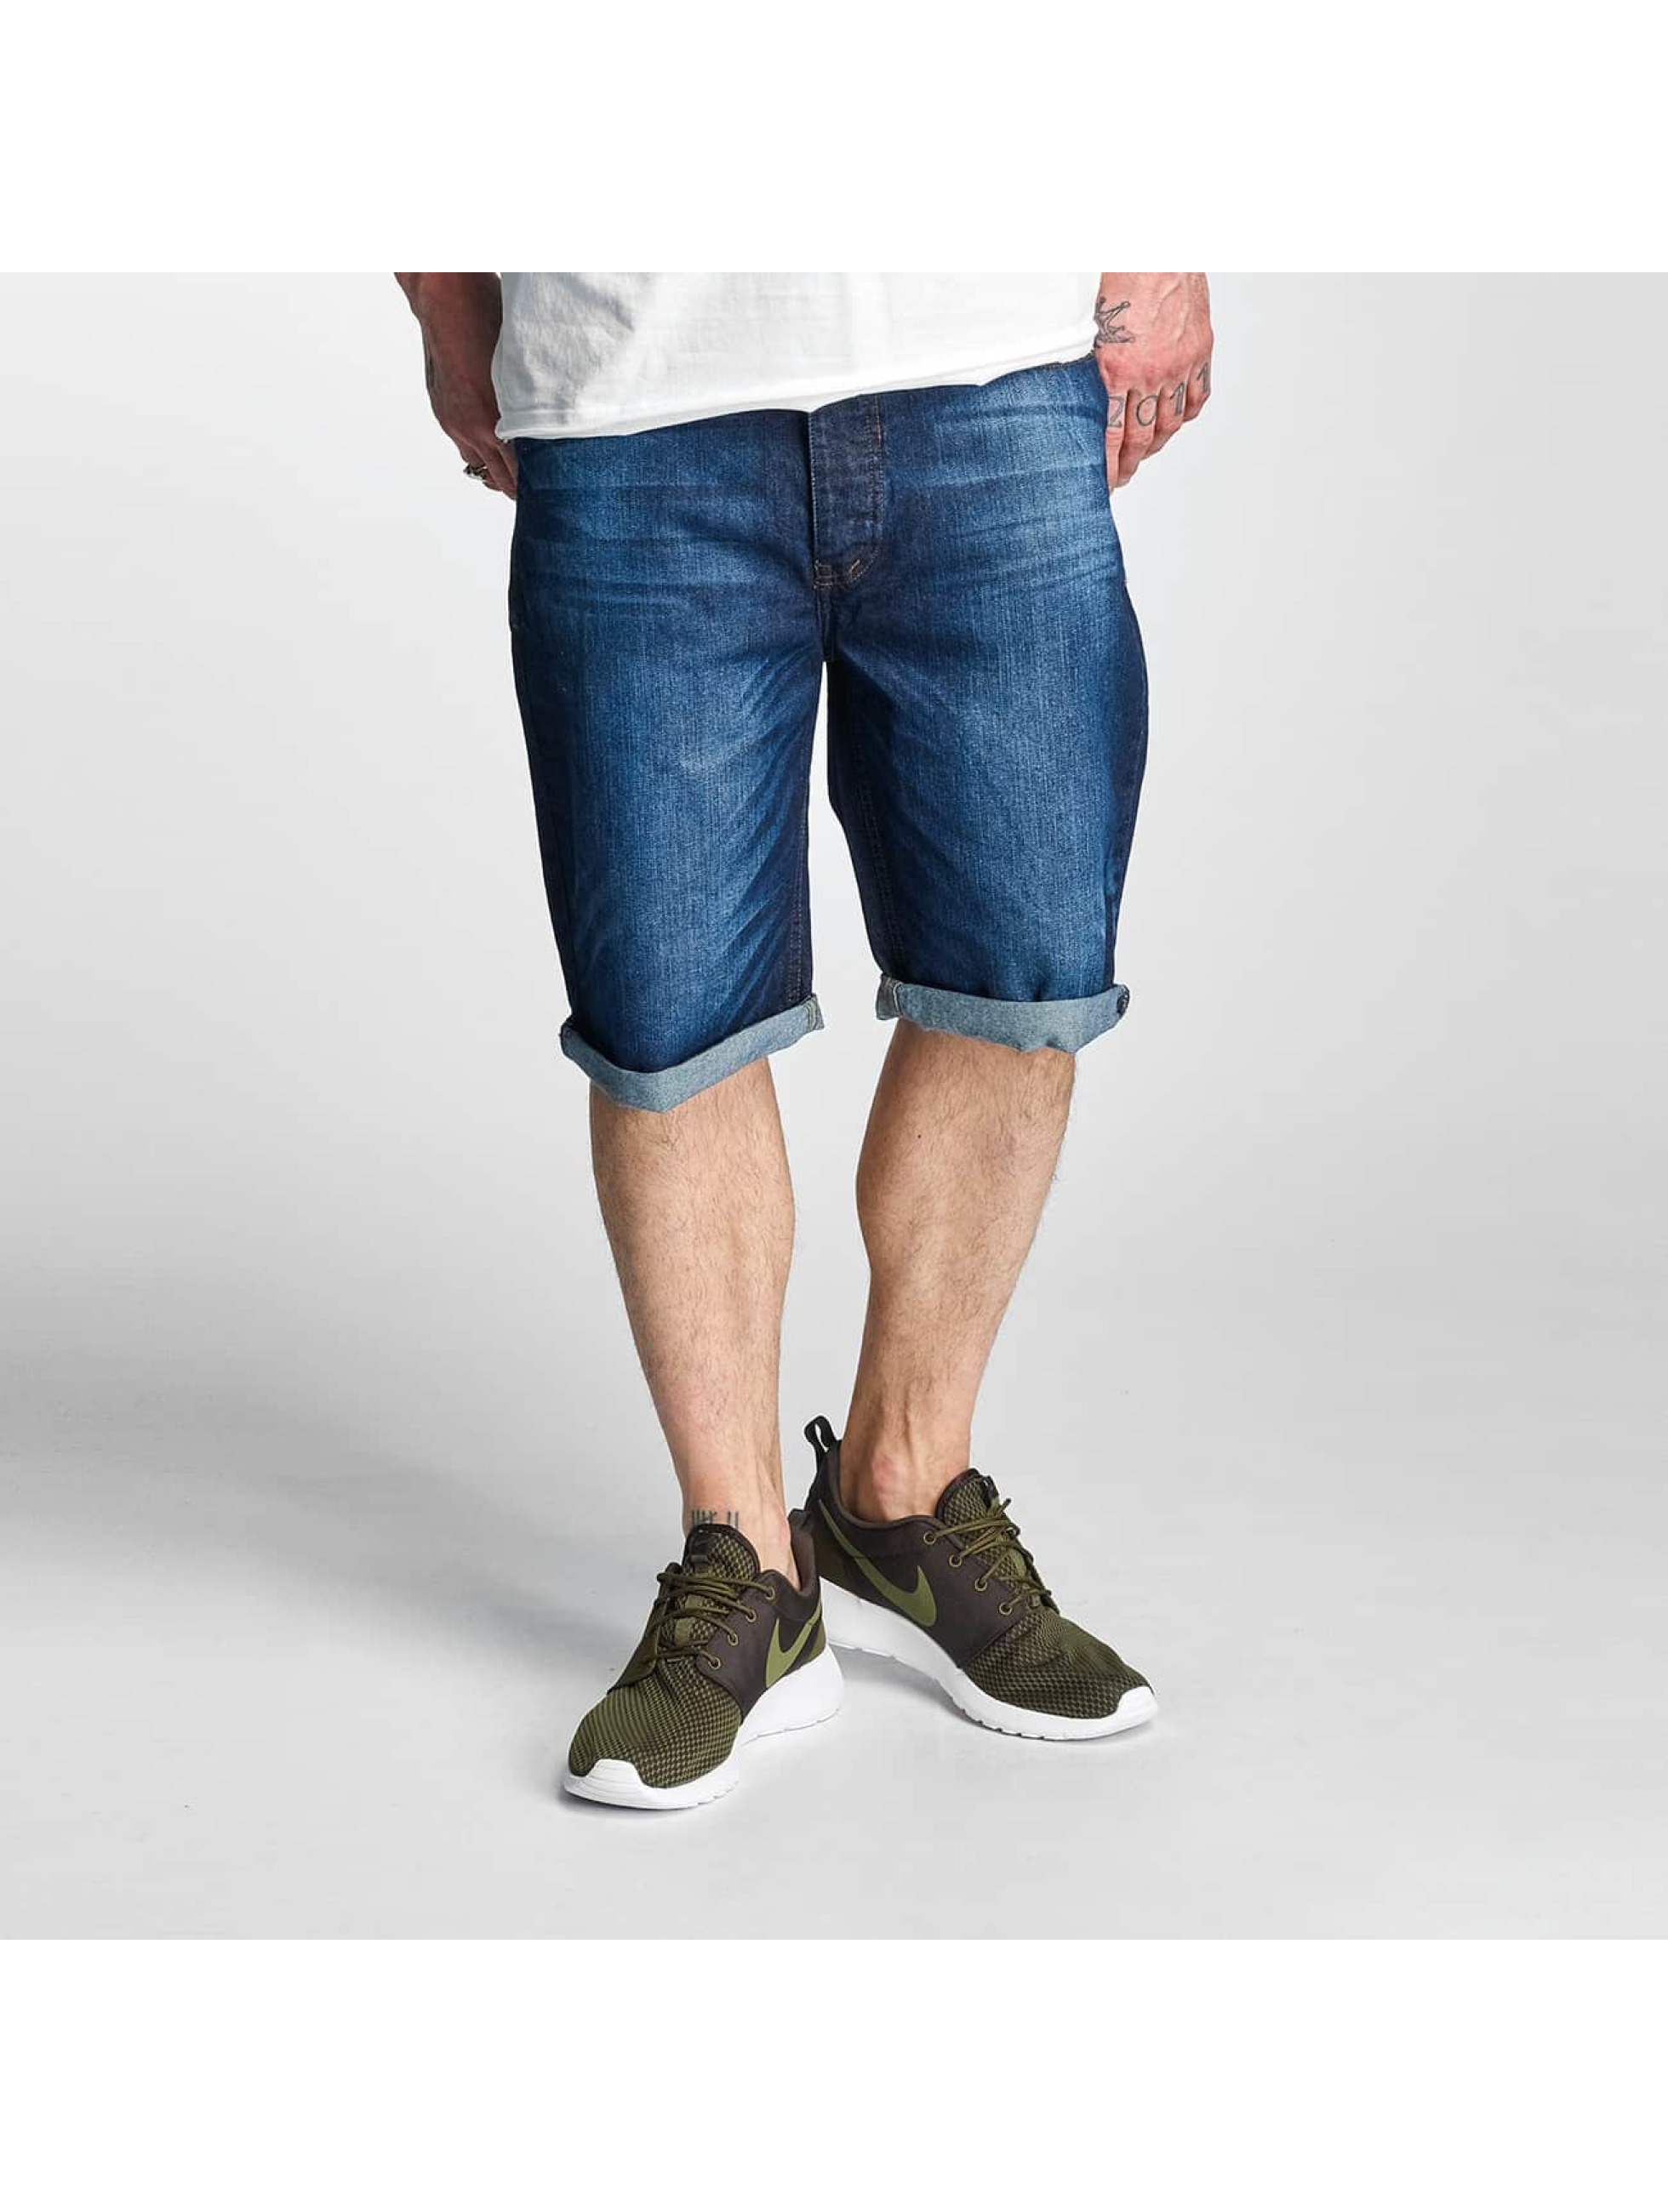 Rocawear / Short Relax Fit in blue W 34